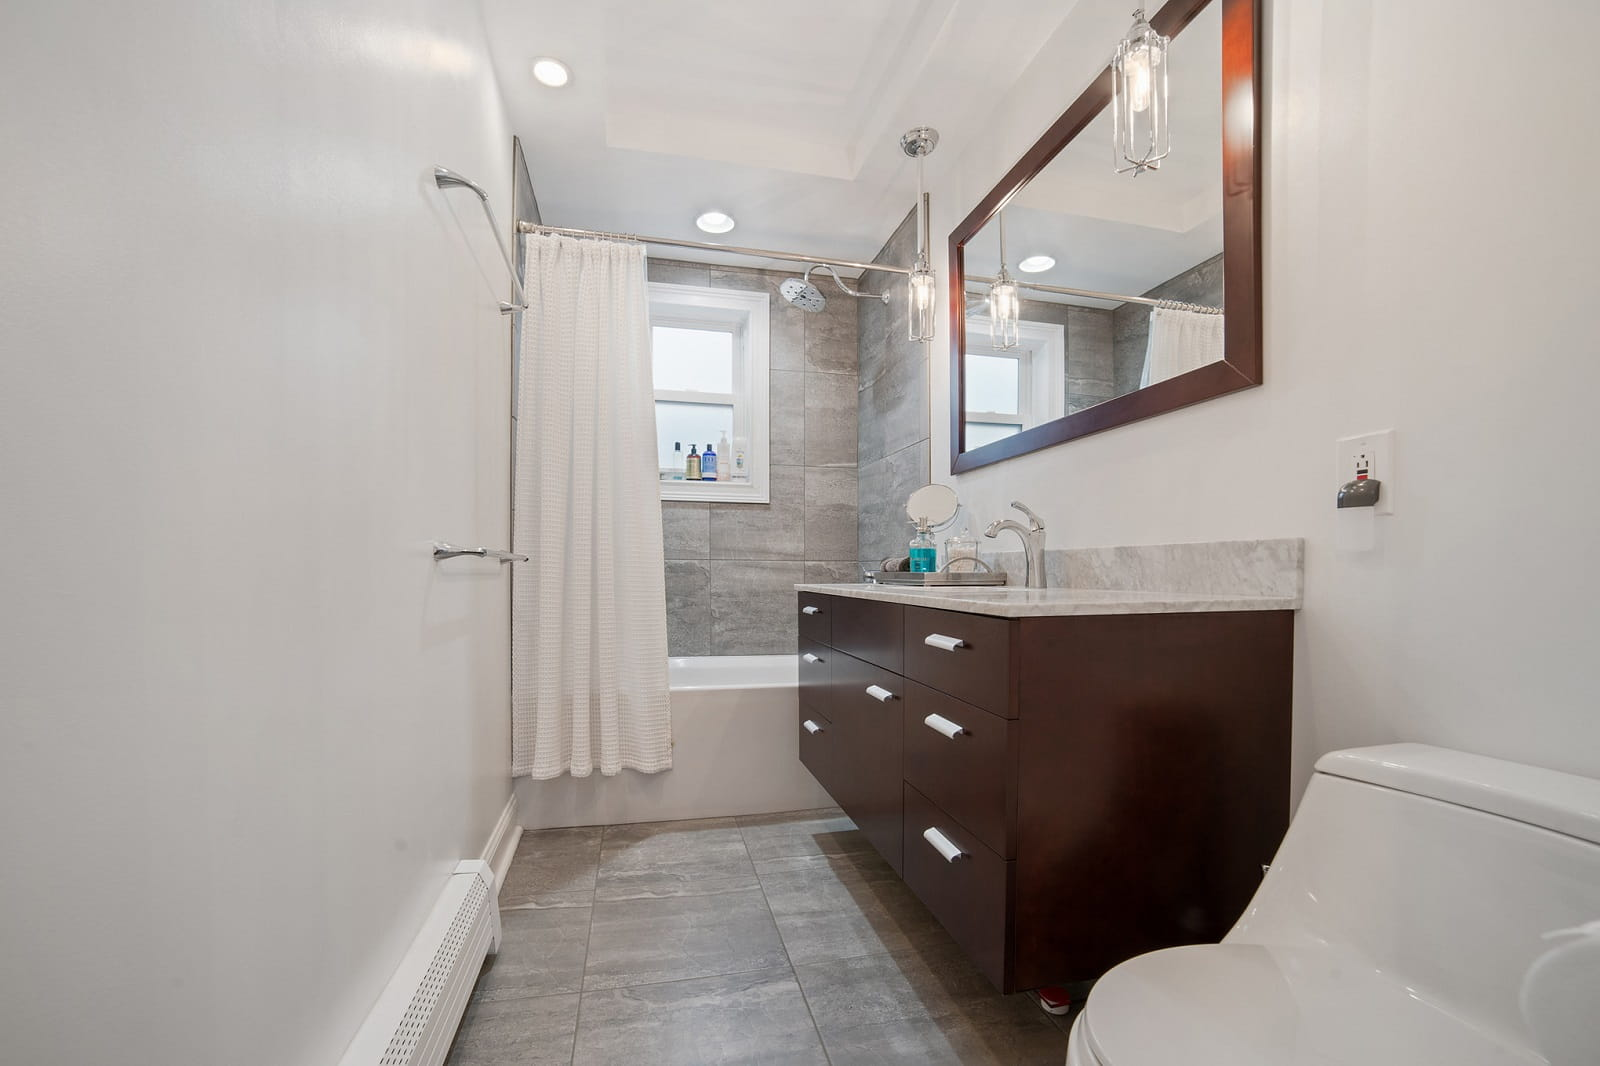 Real Estate Photography in Bronx - New York - USA - Bathroom View